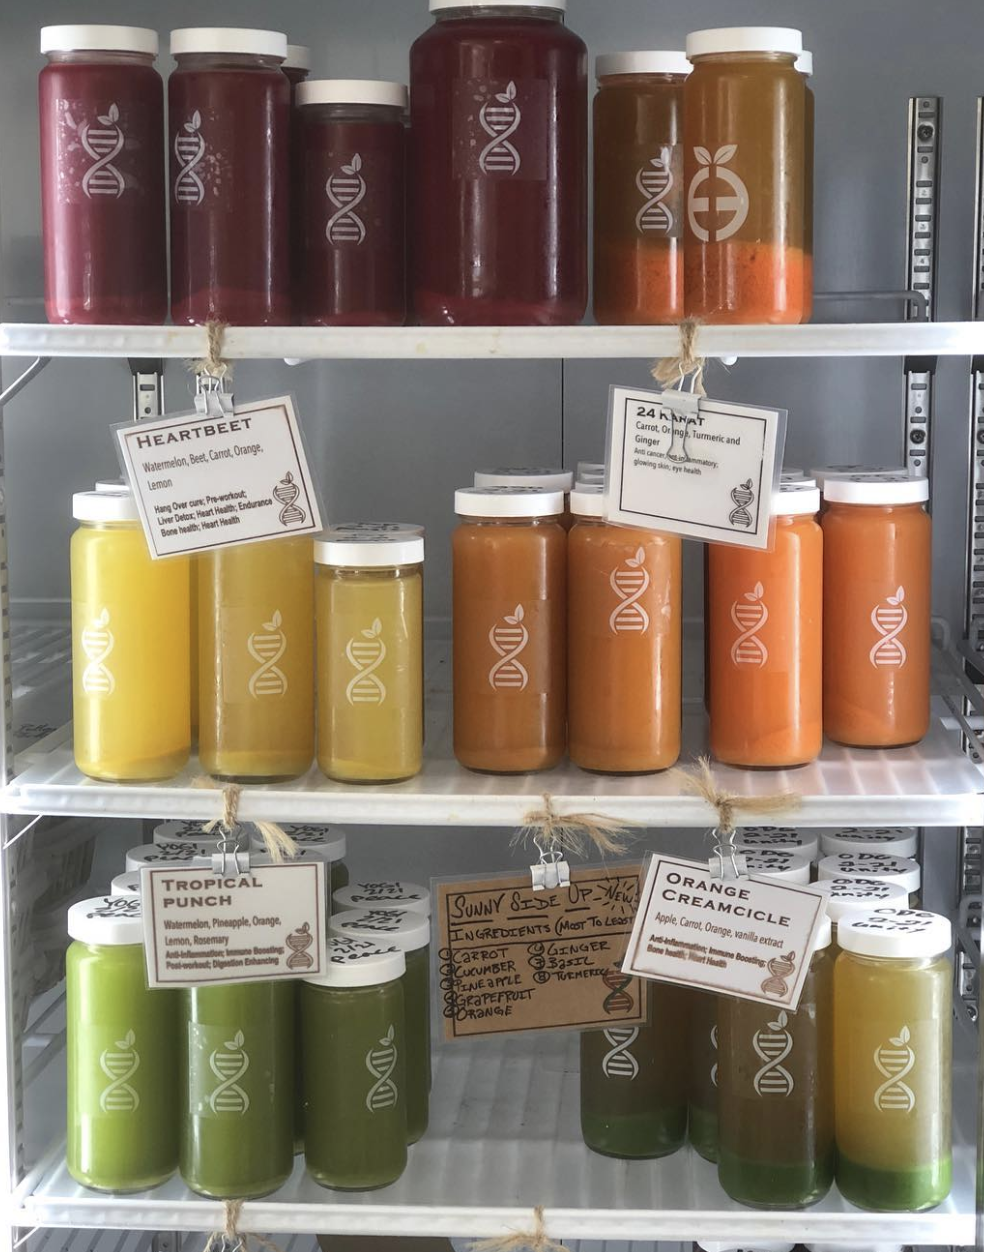 Cold-pressed juices from Tribe Collective